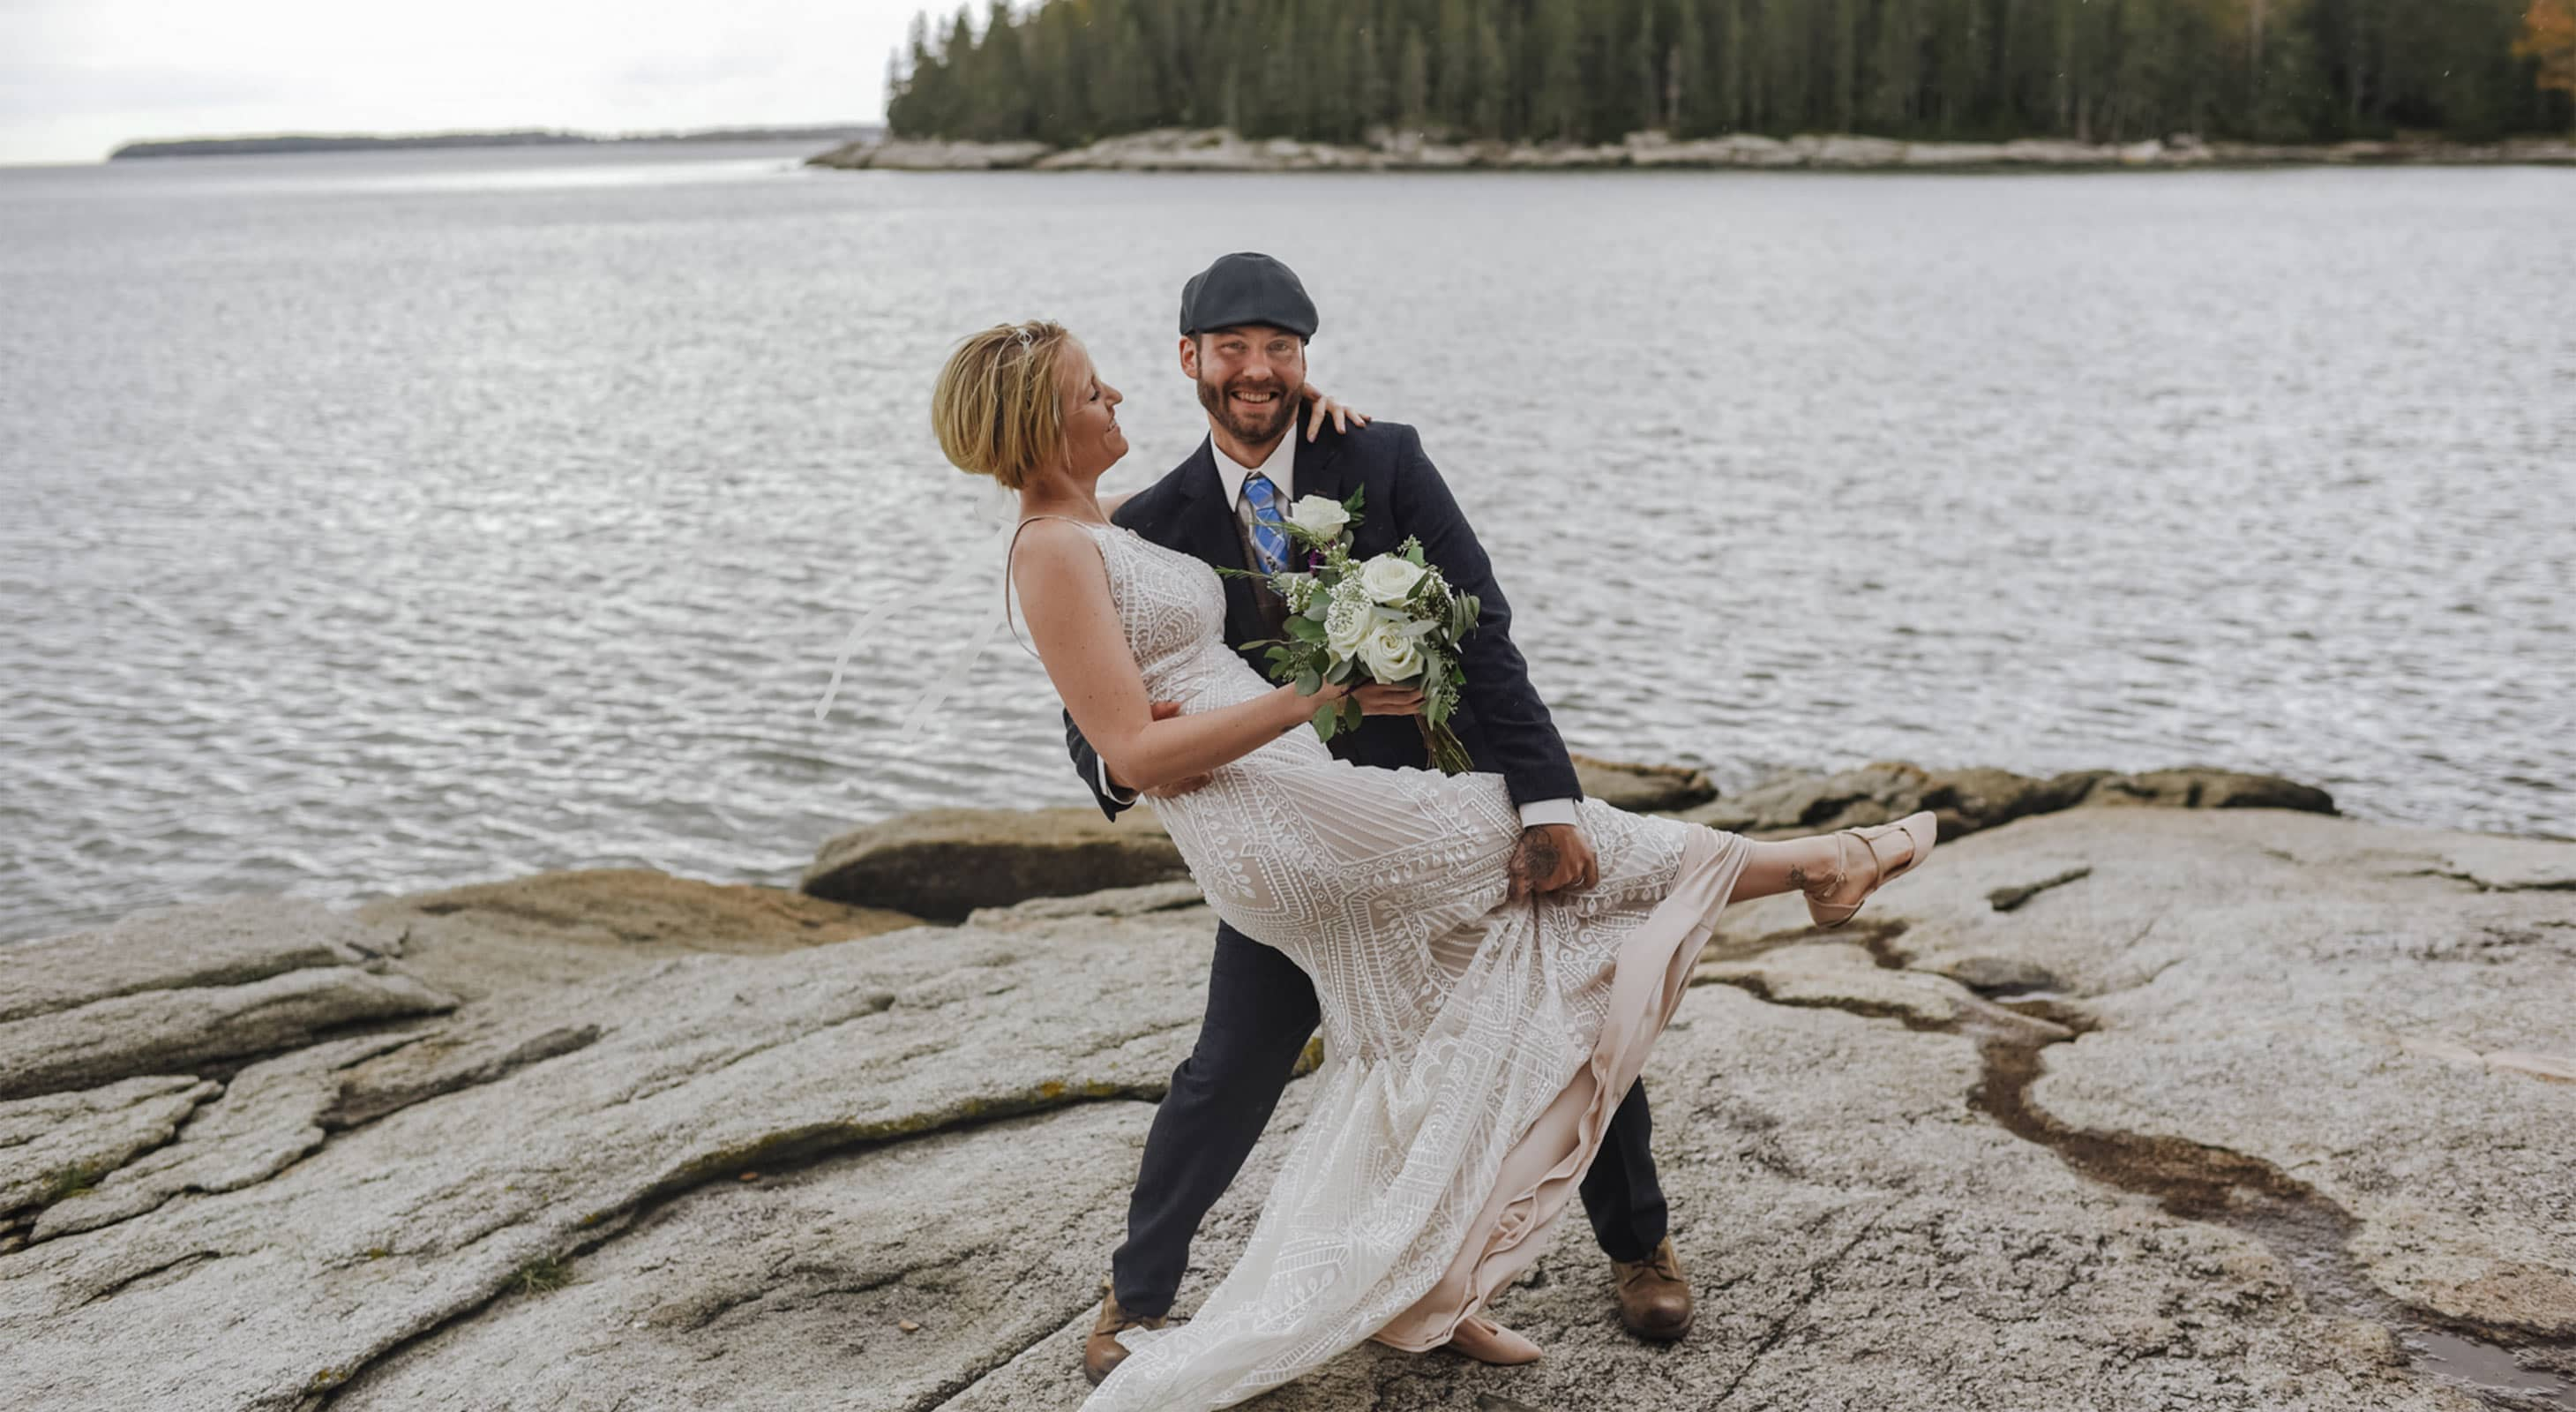 Bride and Groom on Rock in front of water